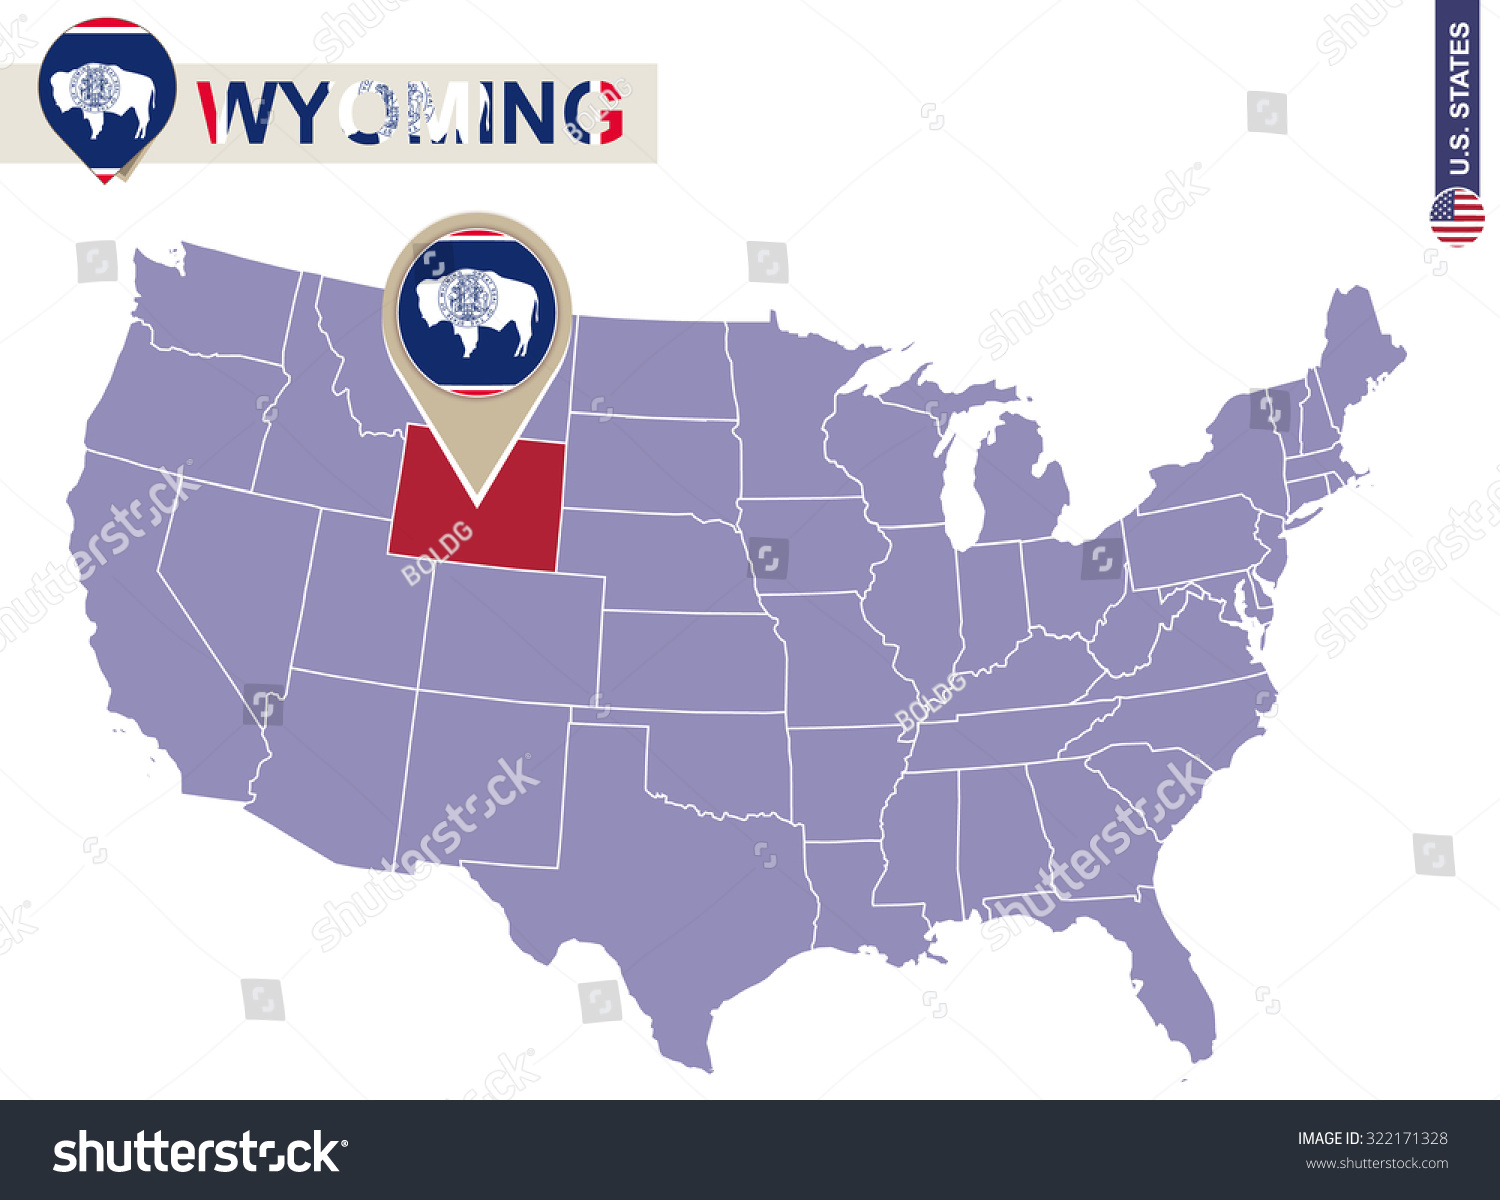 Wyoming State Maps USA Maps Of Wyoming WY Wyoming Outline Maps - Bentonite us map